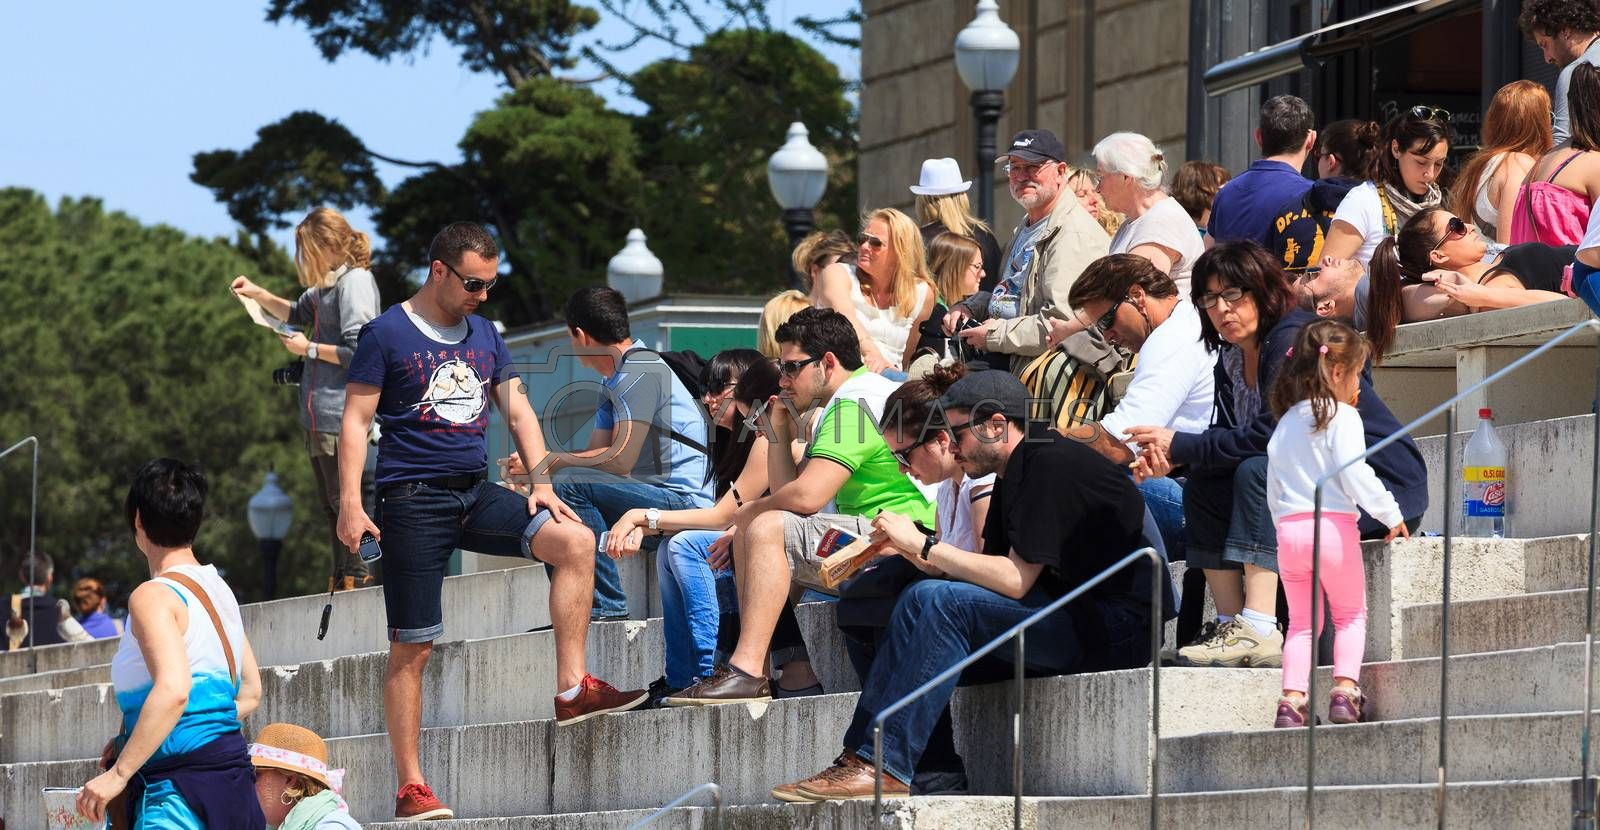 BARCELONA, SPAIN - APRIL 16, 2013: Tourists sit on the stairs of National Art Museum of Catalonia on April 16, 2013 in Barcelona, Spain. The museum is especially notable for its outstanding collection of romanesque church paintings